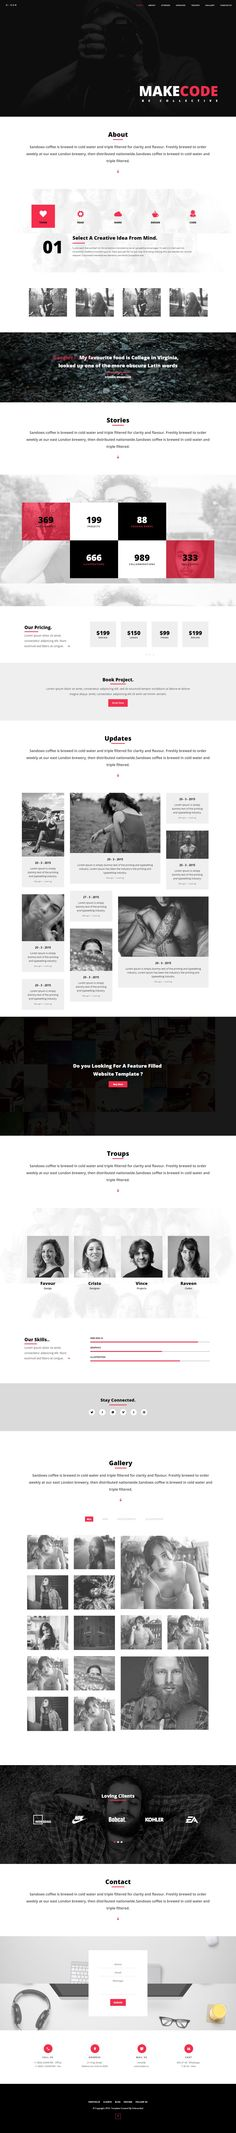 Ogden Creative Multi style One Page Template >Featuring 07 home page variants with Unlimited Colors, Fullscreen Image Sliders, Fullscreen Video, Parallax and Google Web Fonts integrated . Also includes additional pages such as blog page, single-project page with a working contact form PHP email sending. #responsive #website #templates